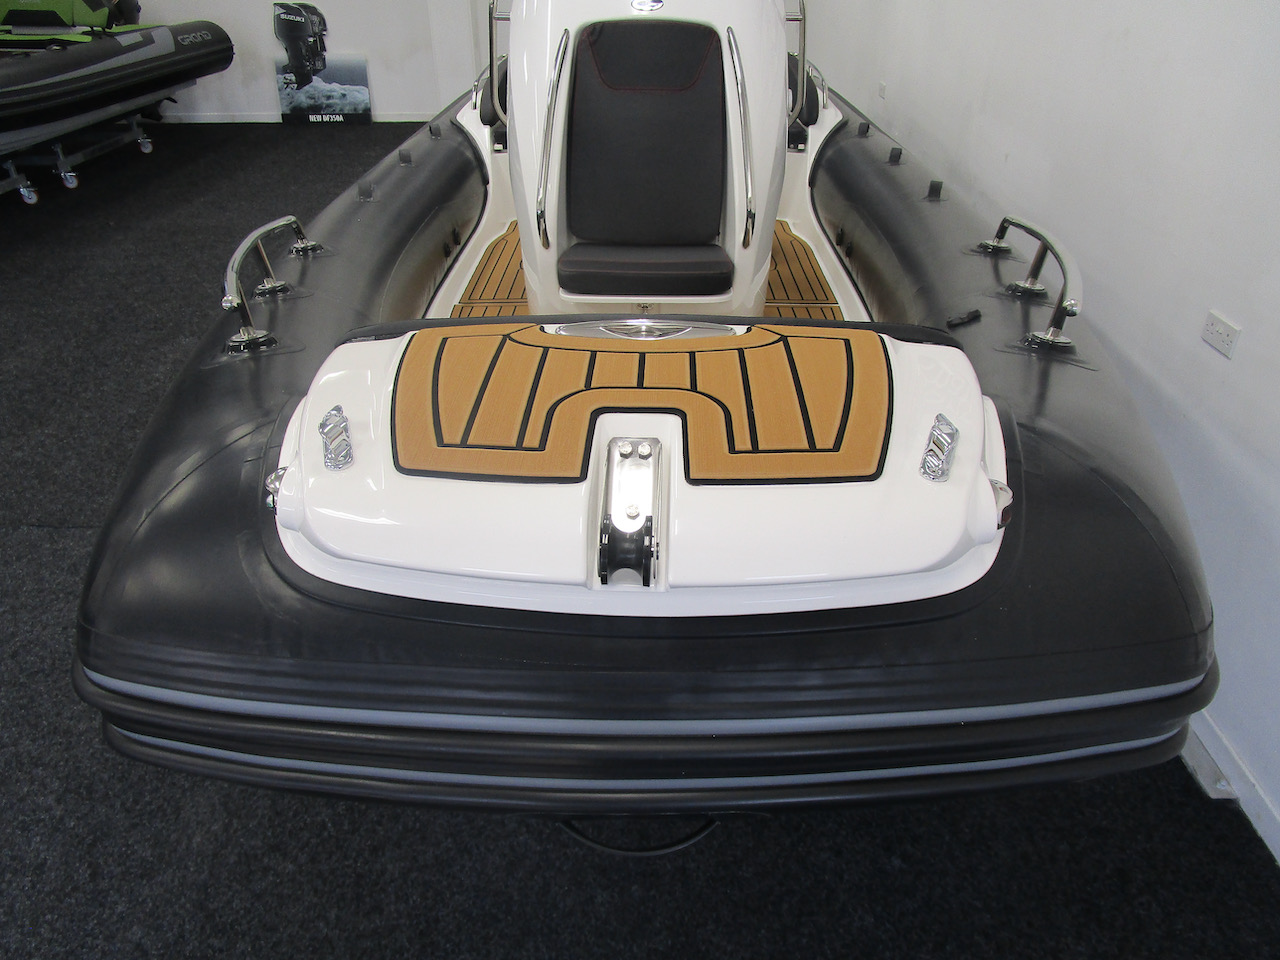 Grand RIB Golden Line G650 bow step plate and cleat (down)